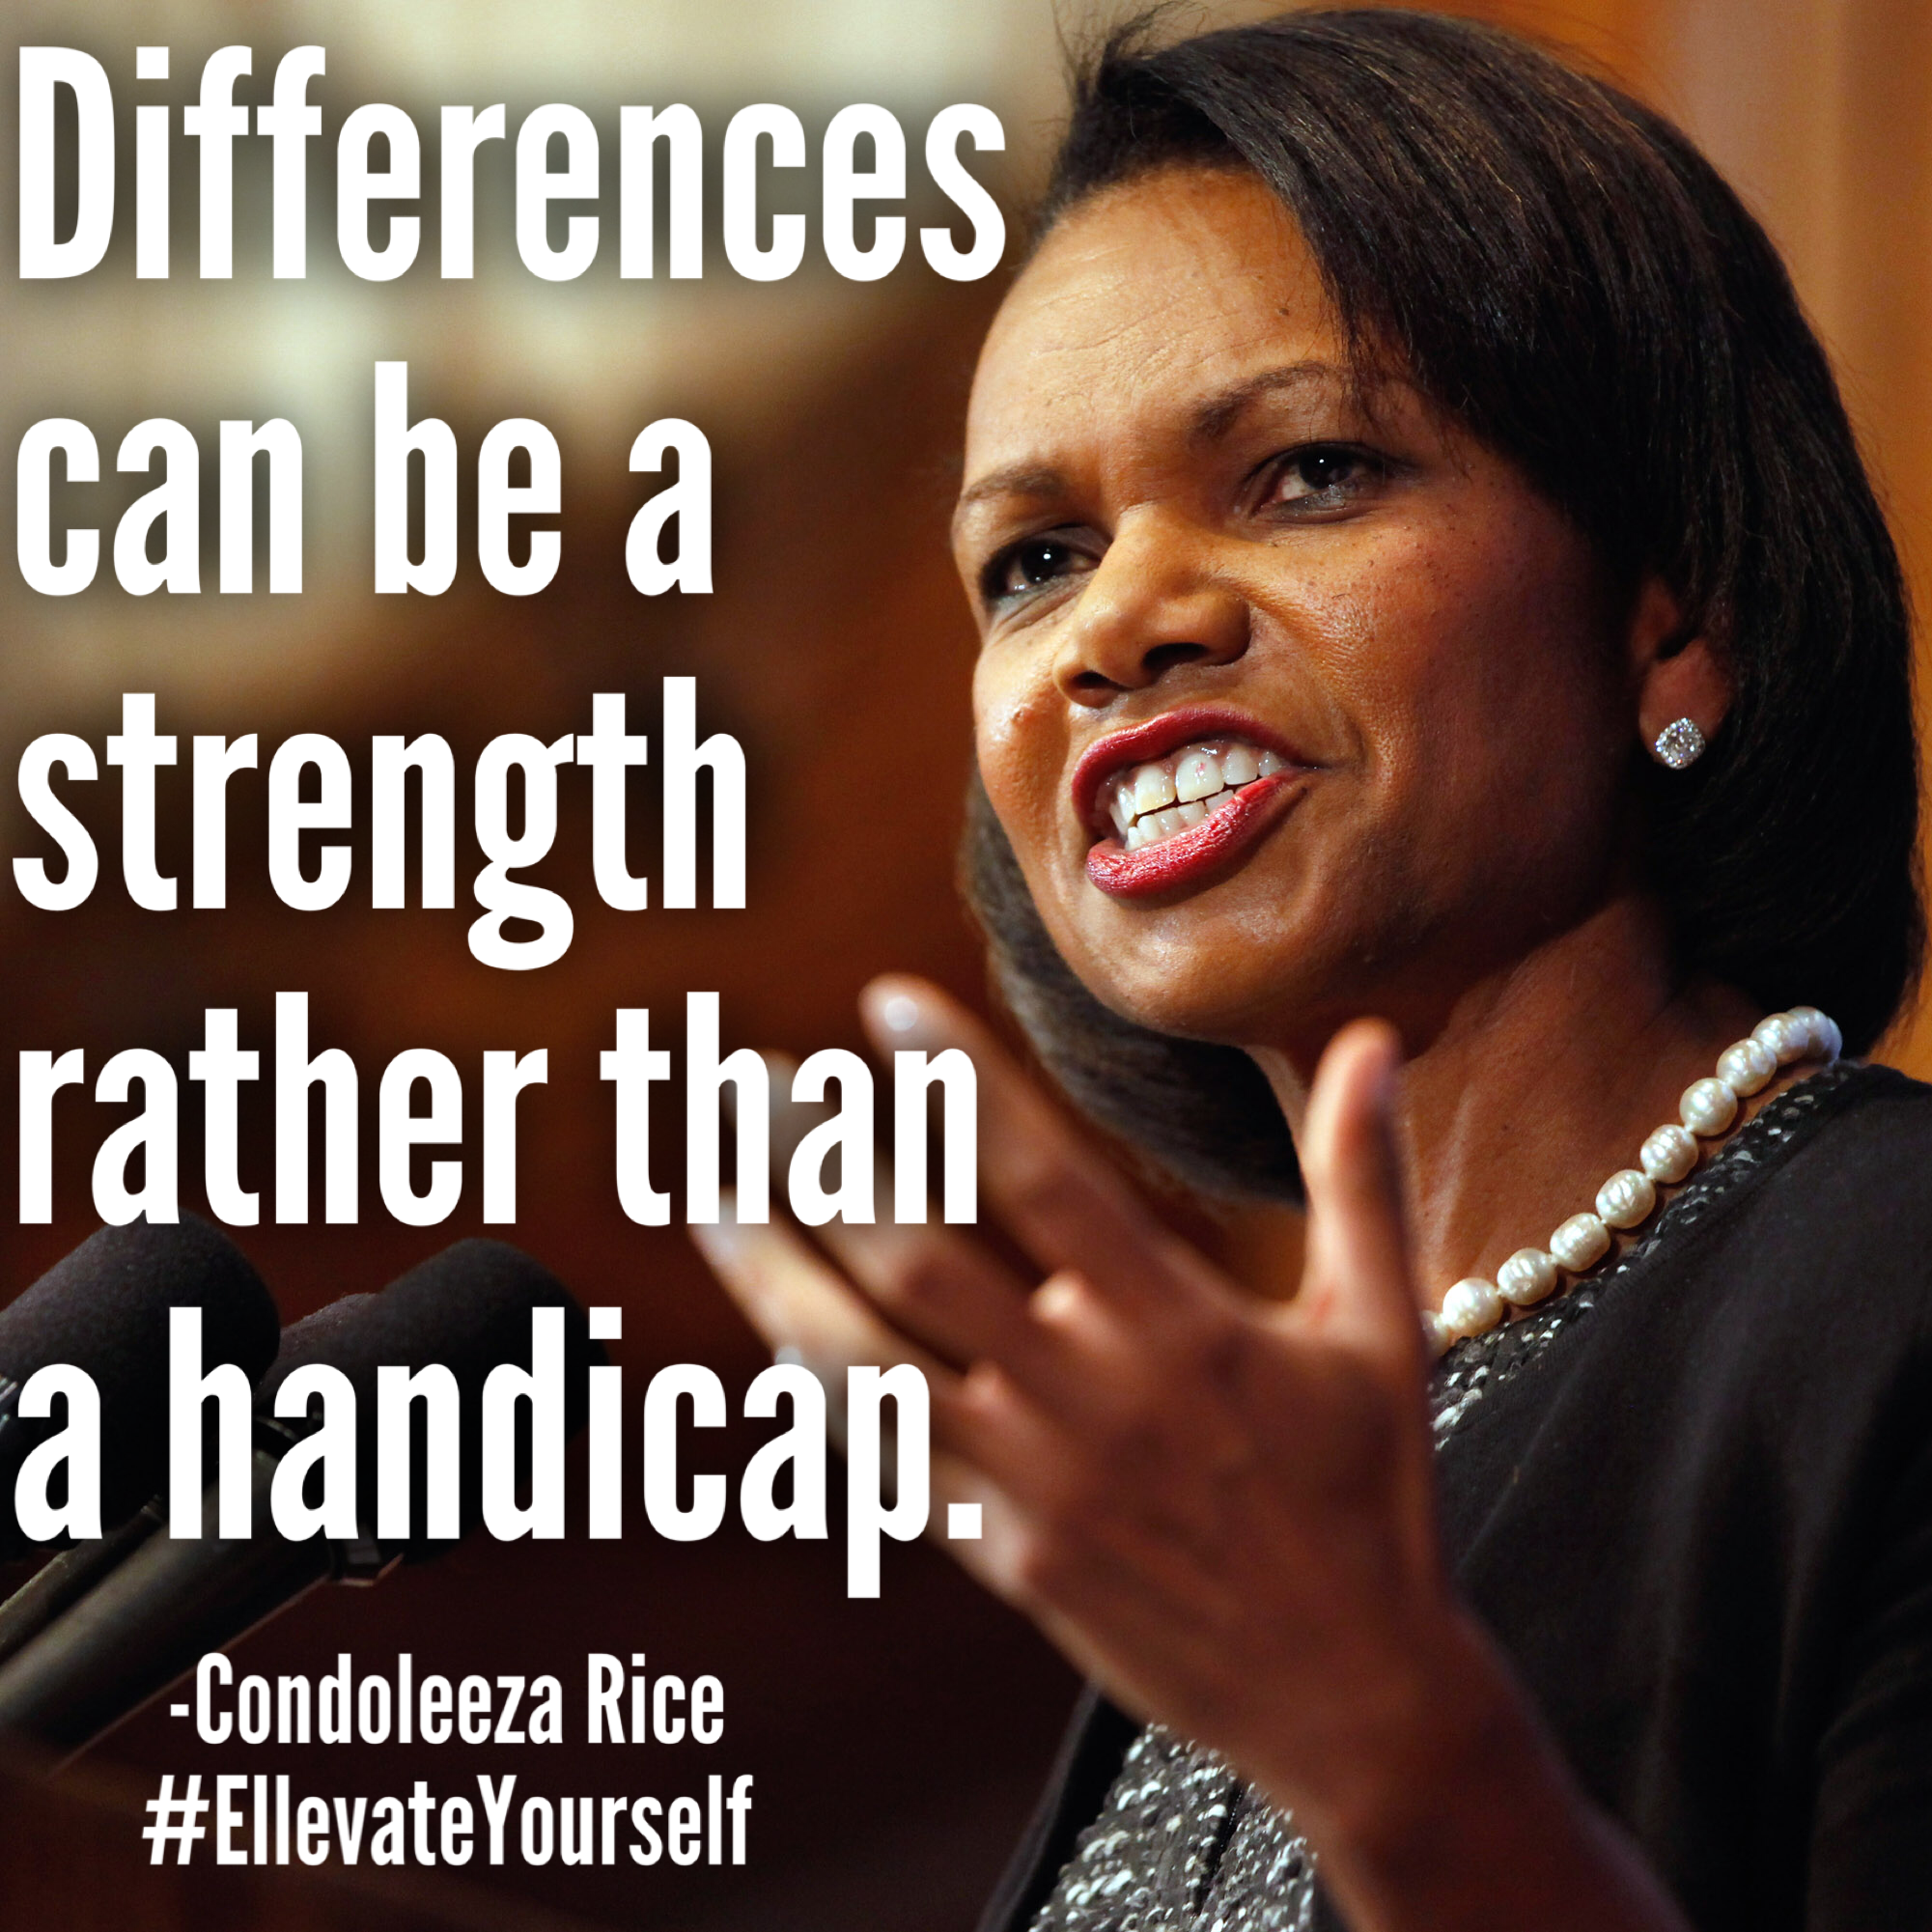 Condoleezza Rice Quotes: The Best Quotes From Inspiring Female Leaders